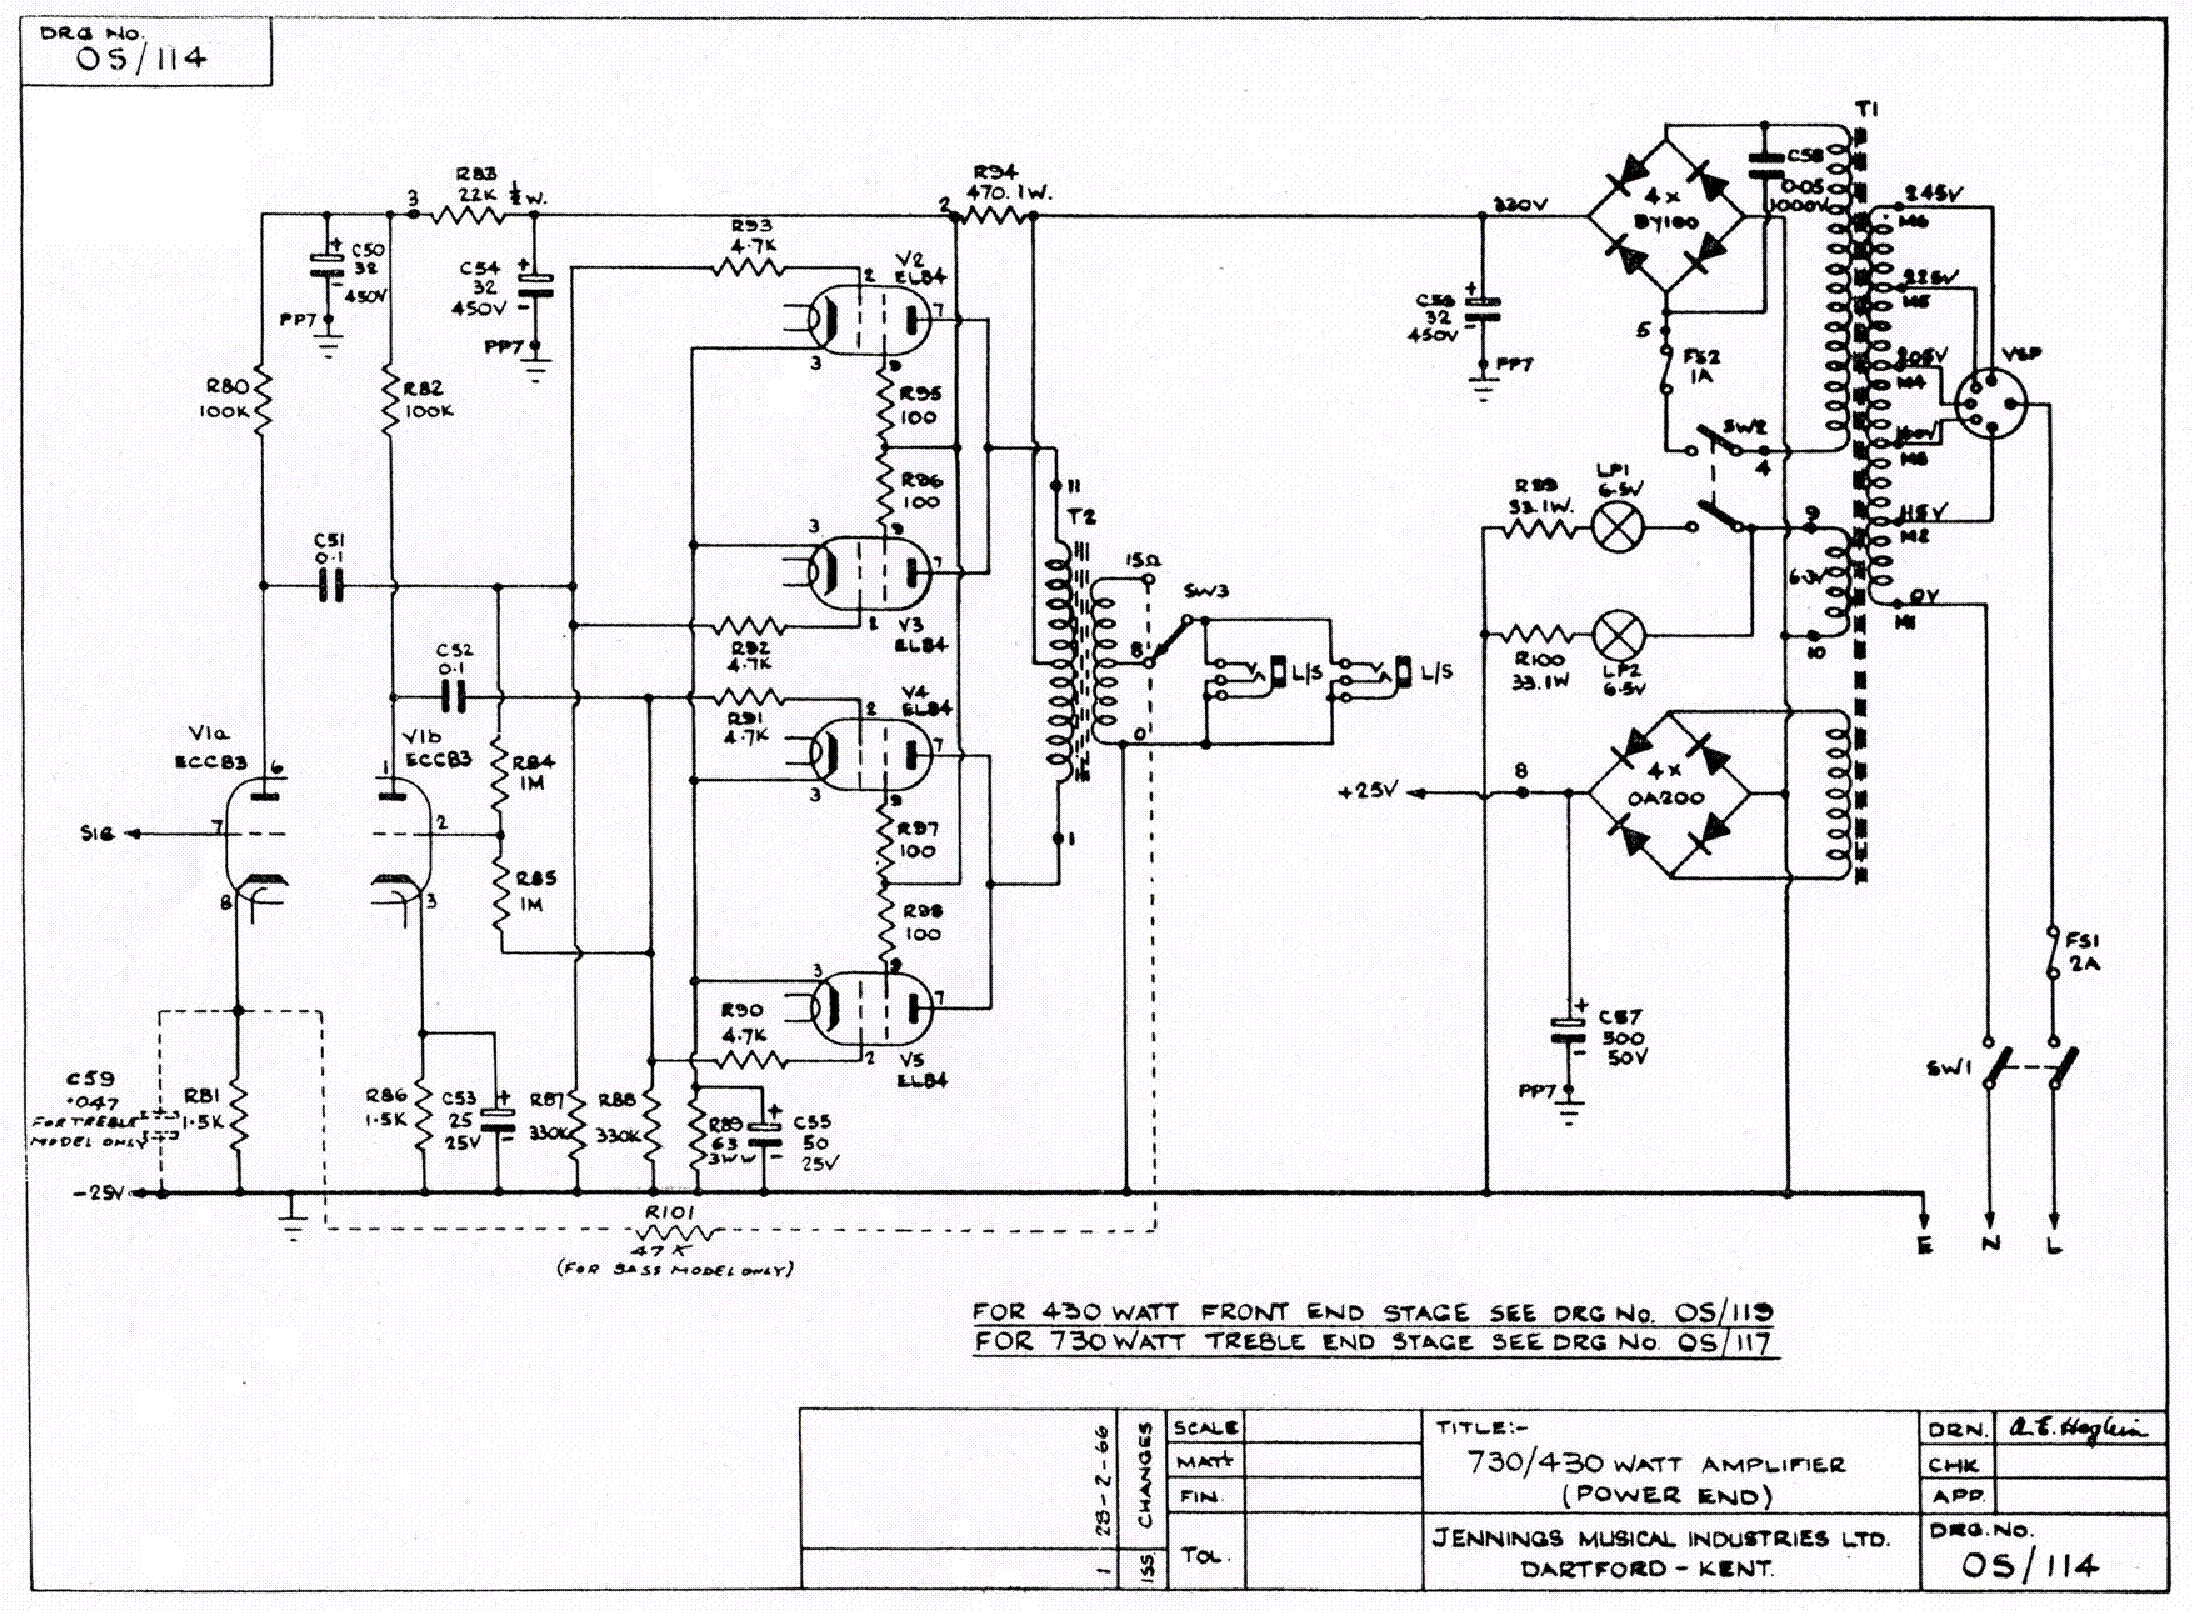 Vox Viscount V Sch Service Manual Download Schematics